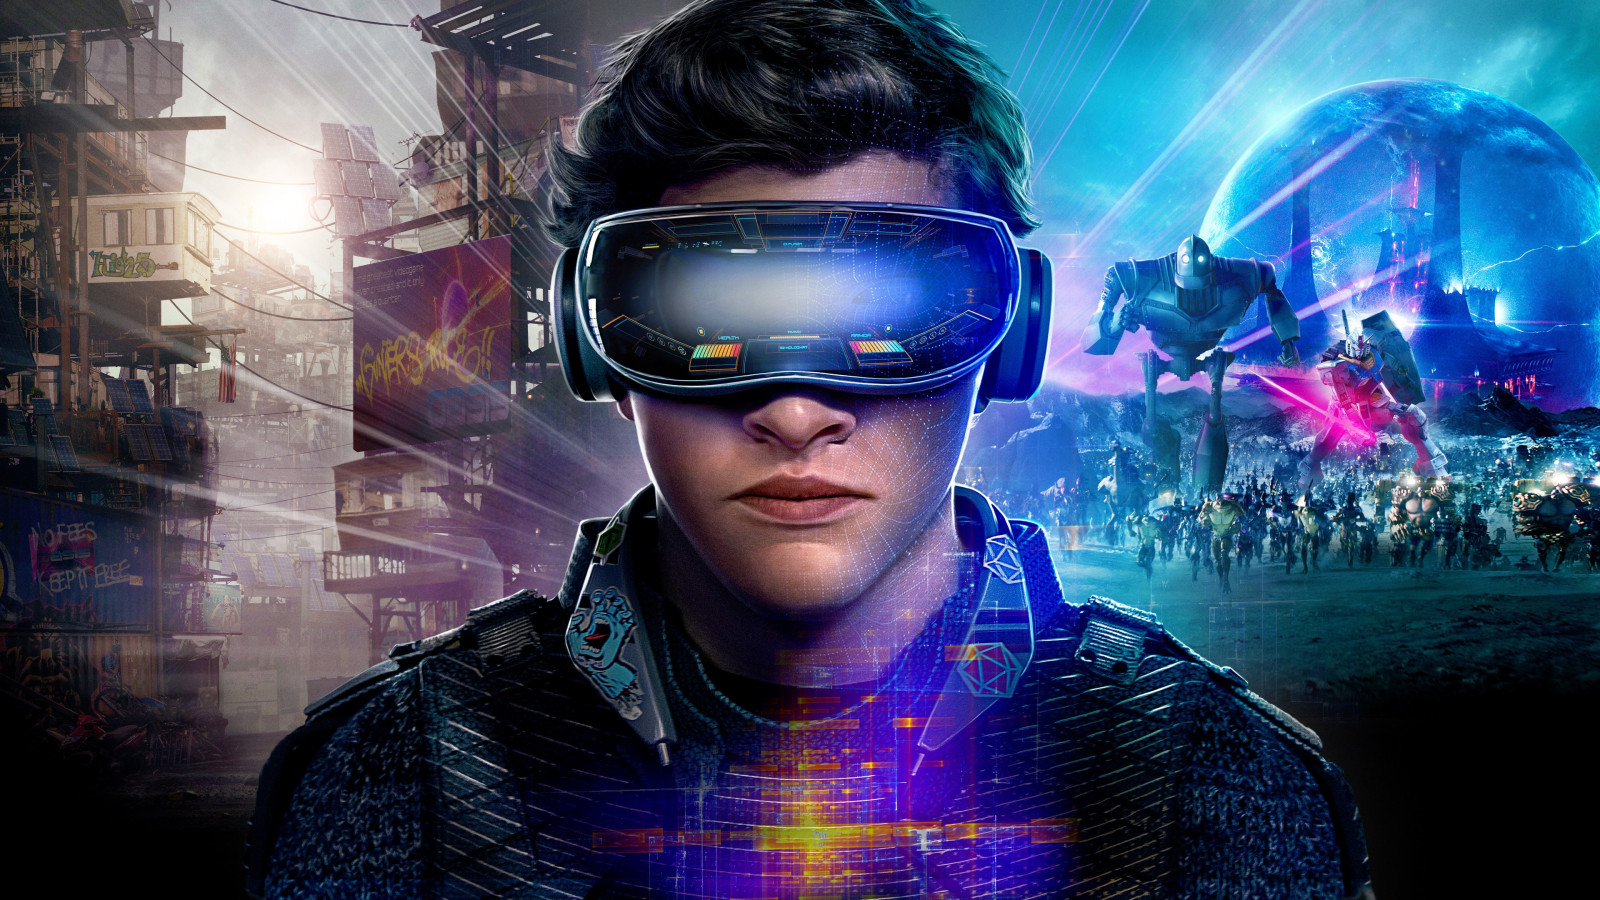 Ready Player One wallpaper 1600x900